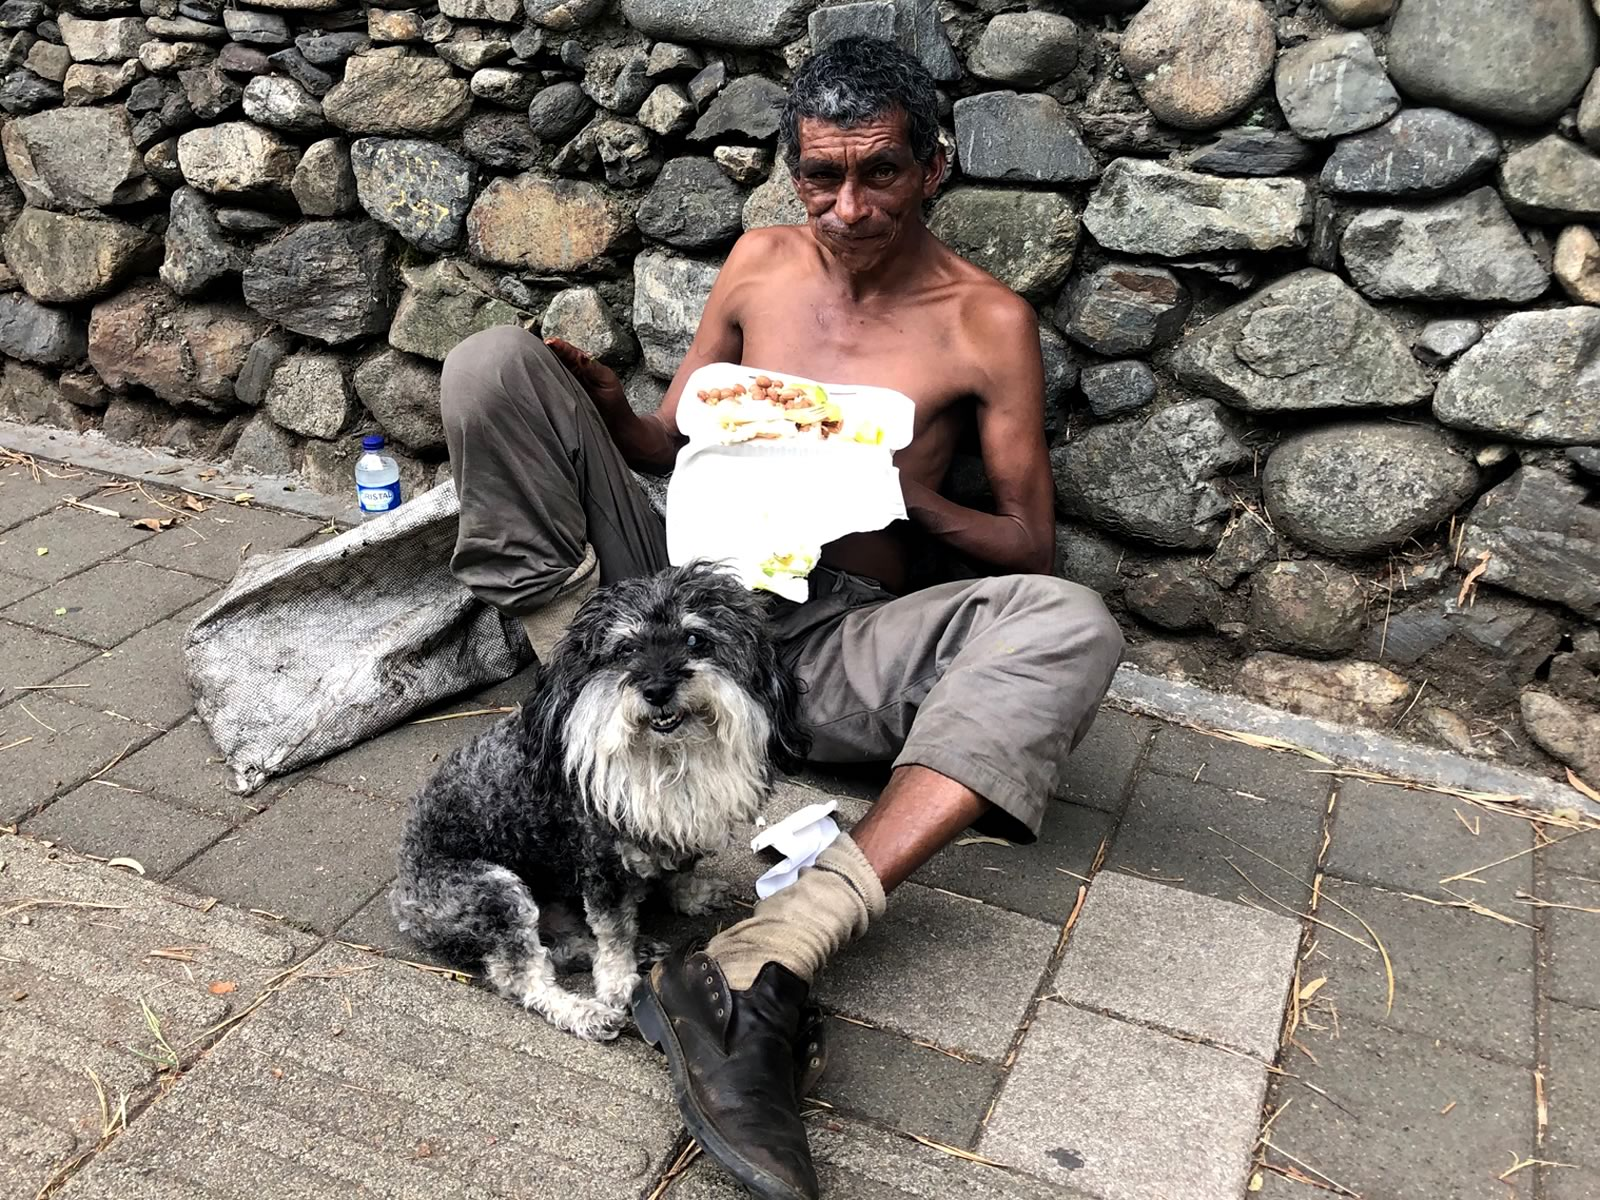 Willie provides a homeless man with a meal in Medellin Colombia